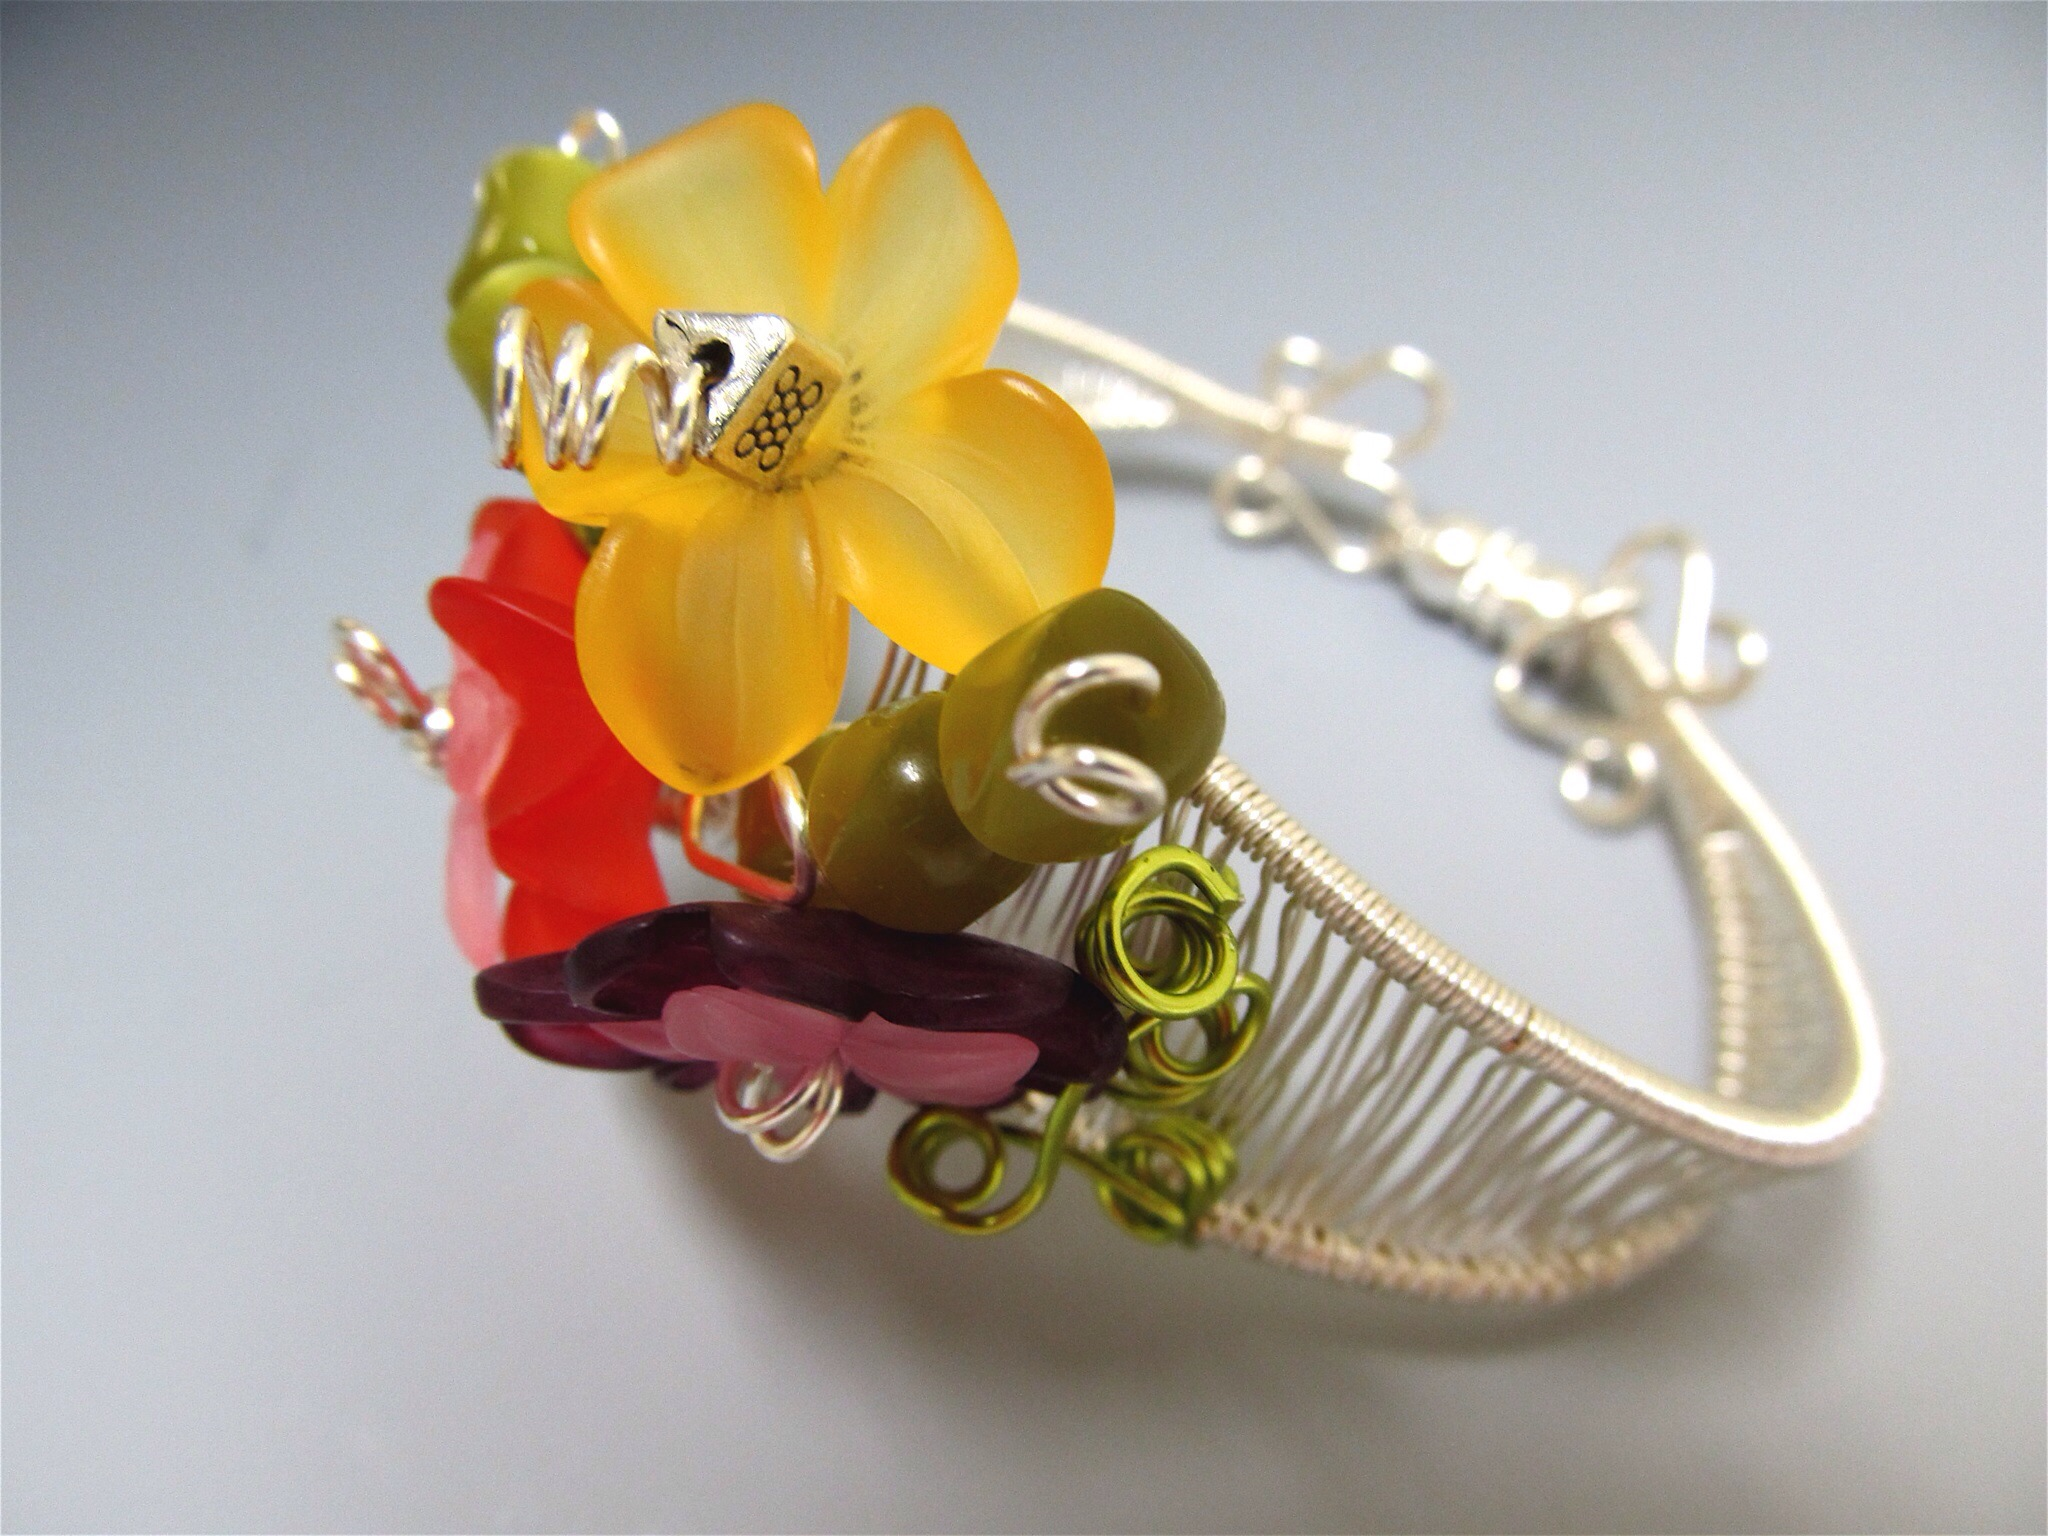 In Bloom: Acrylic & Sterling Silver